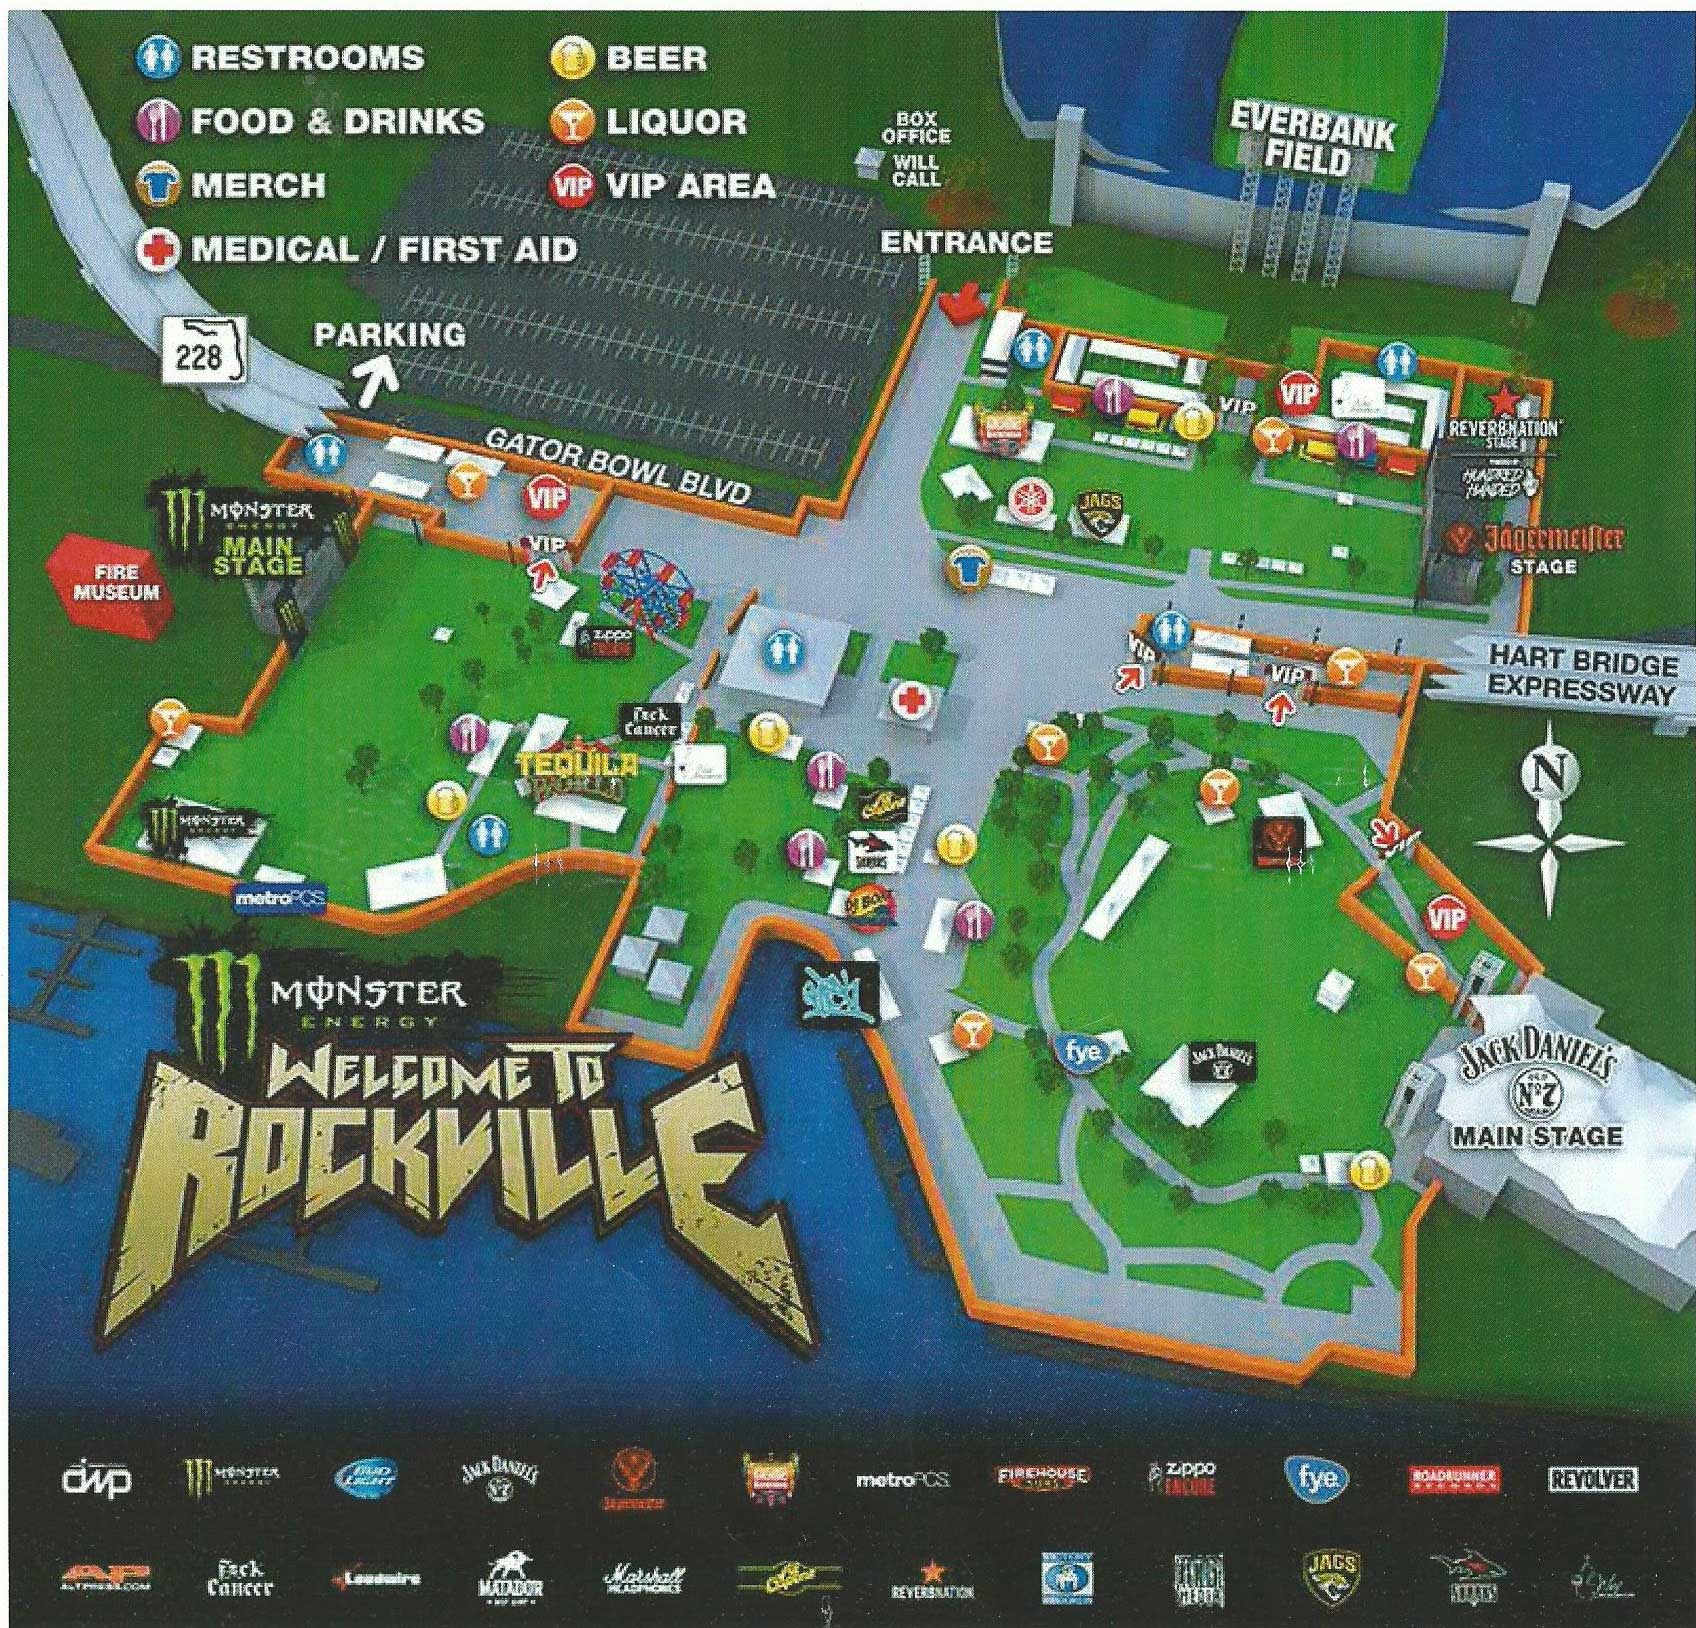 Welcome to Rockville 2015 Map